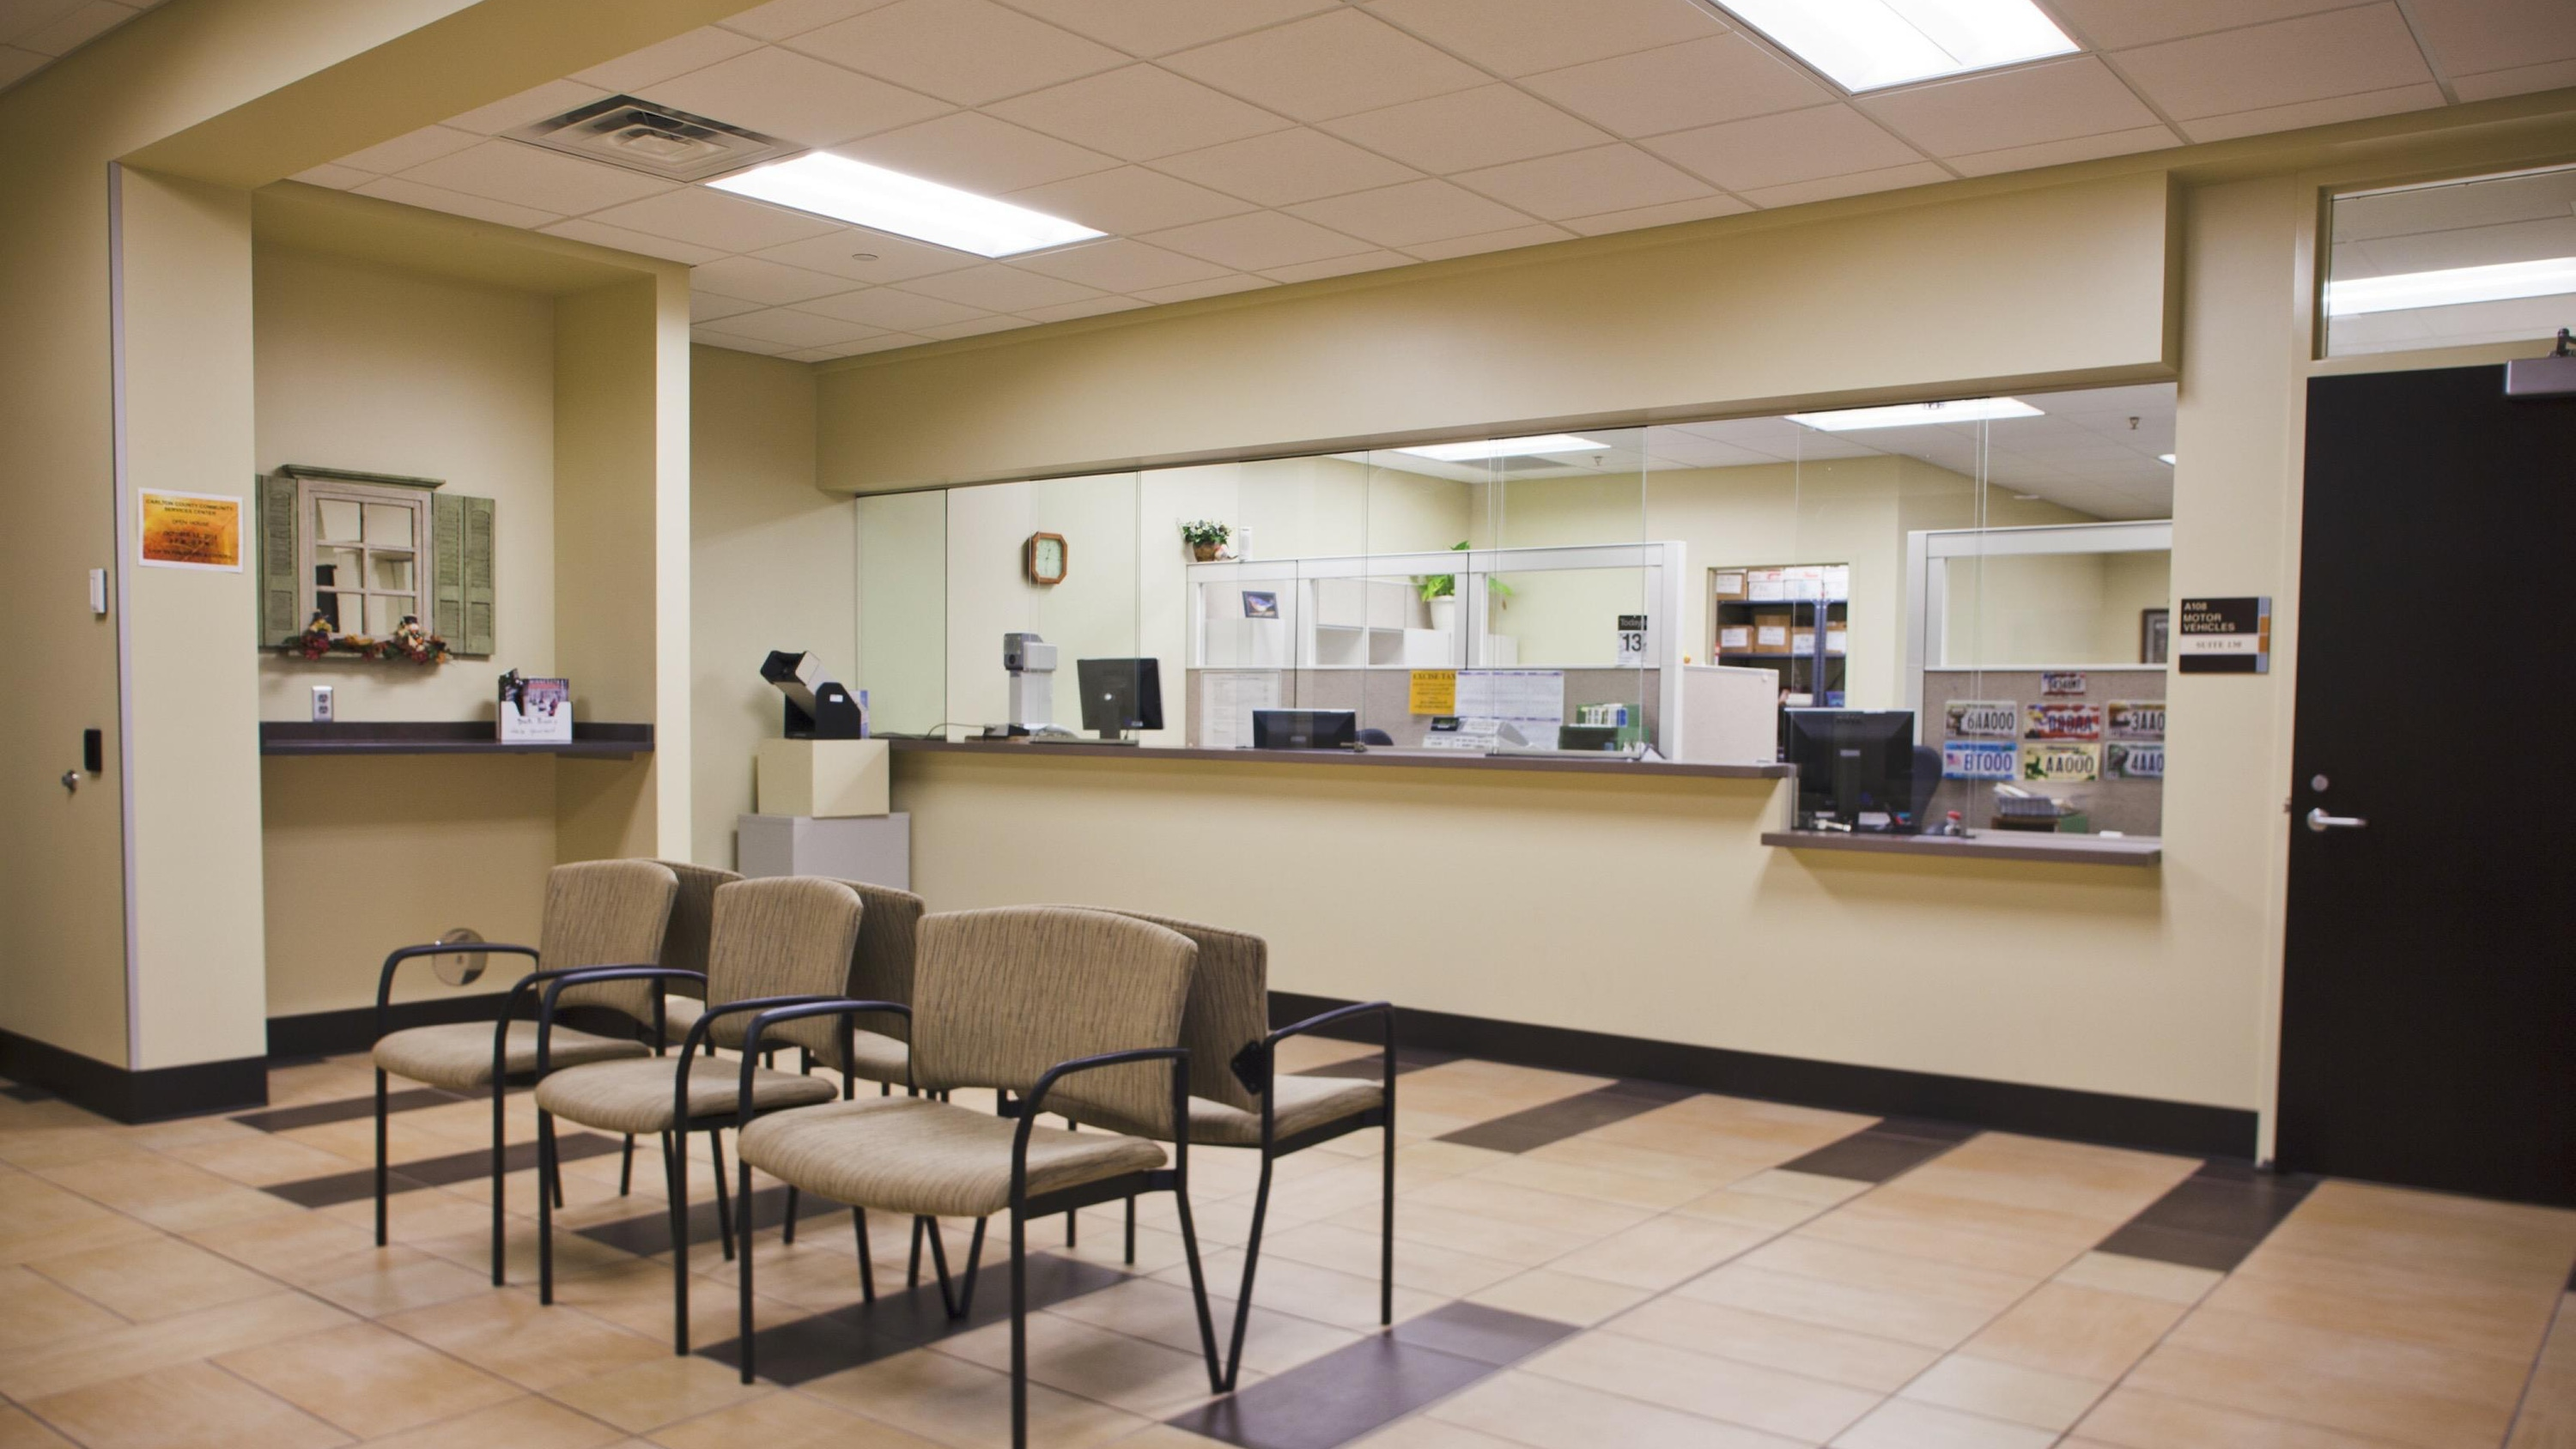 Carlton county health and human services